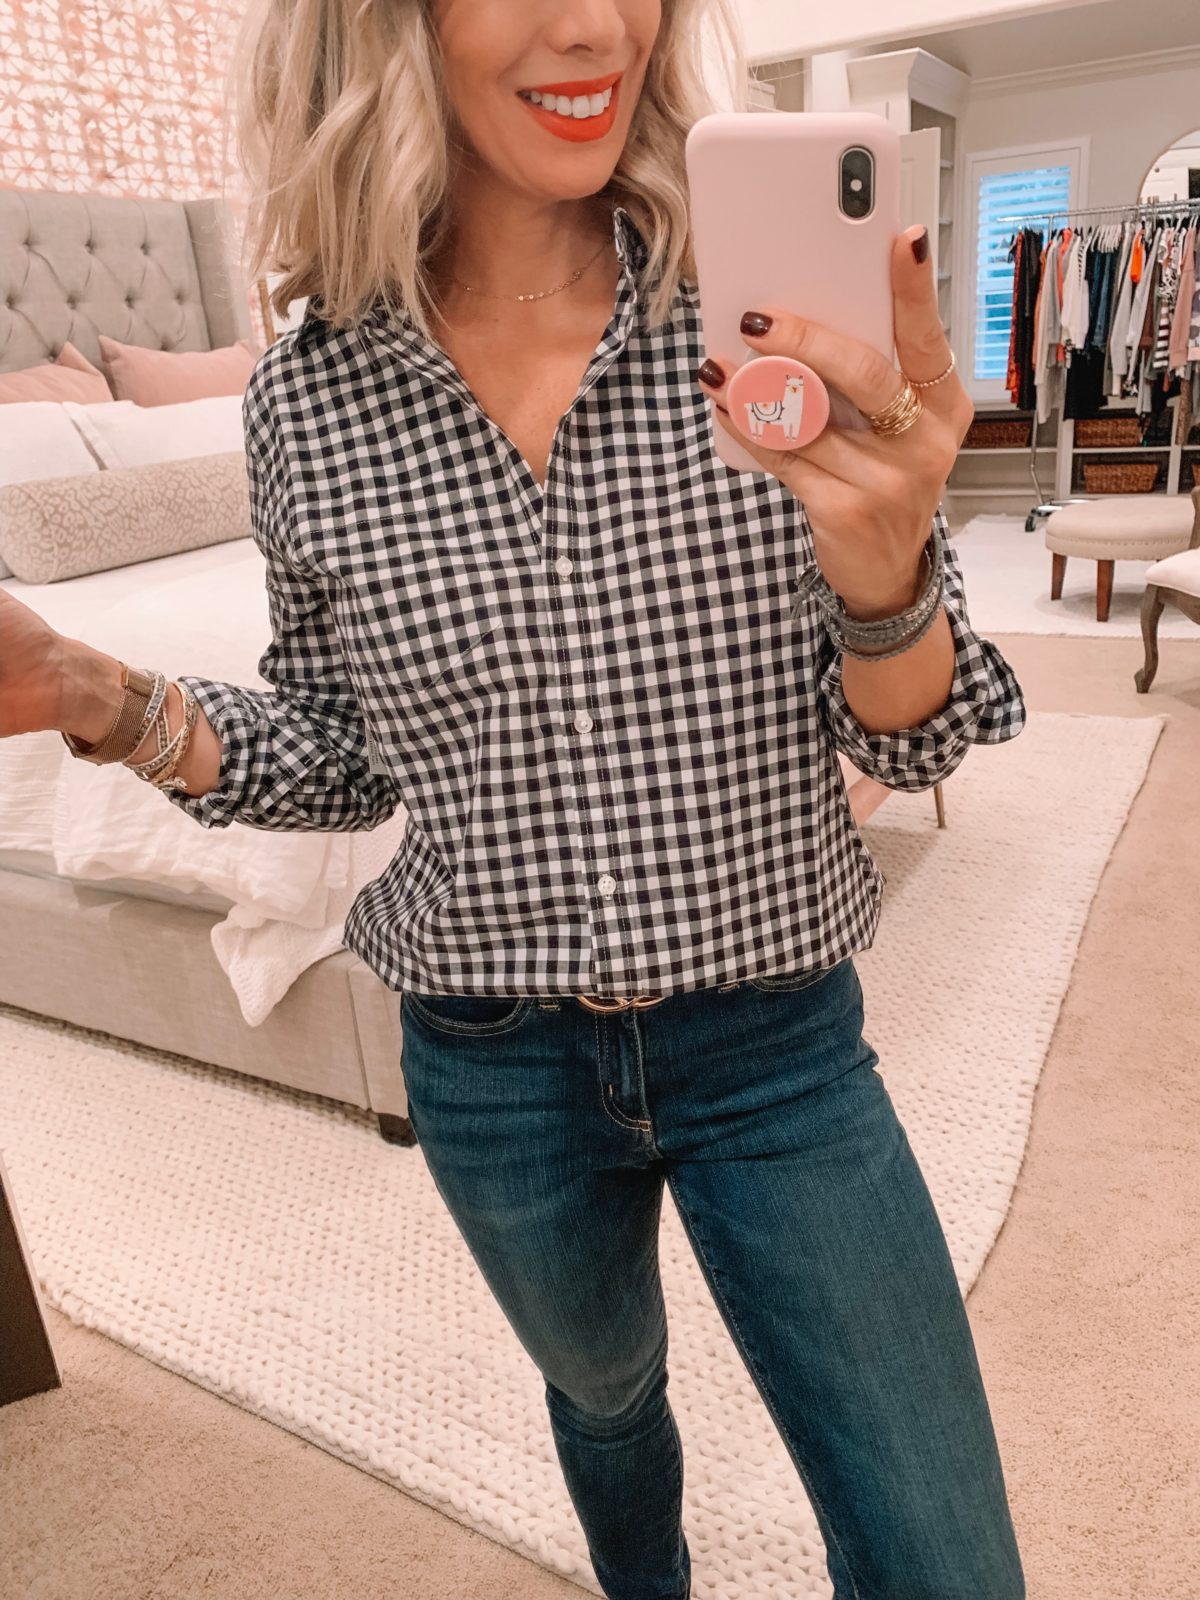 Amazon fashion haul, gingham top and jeans